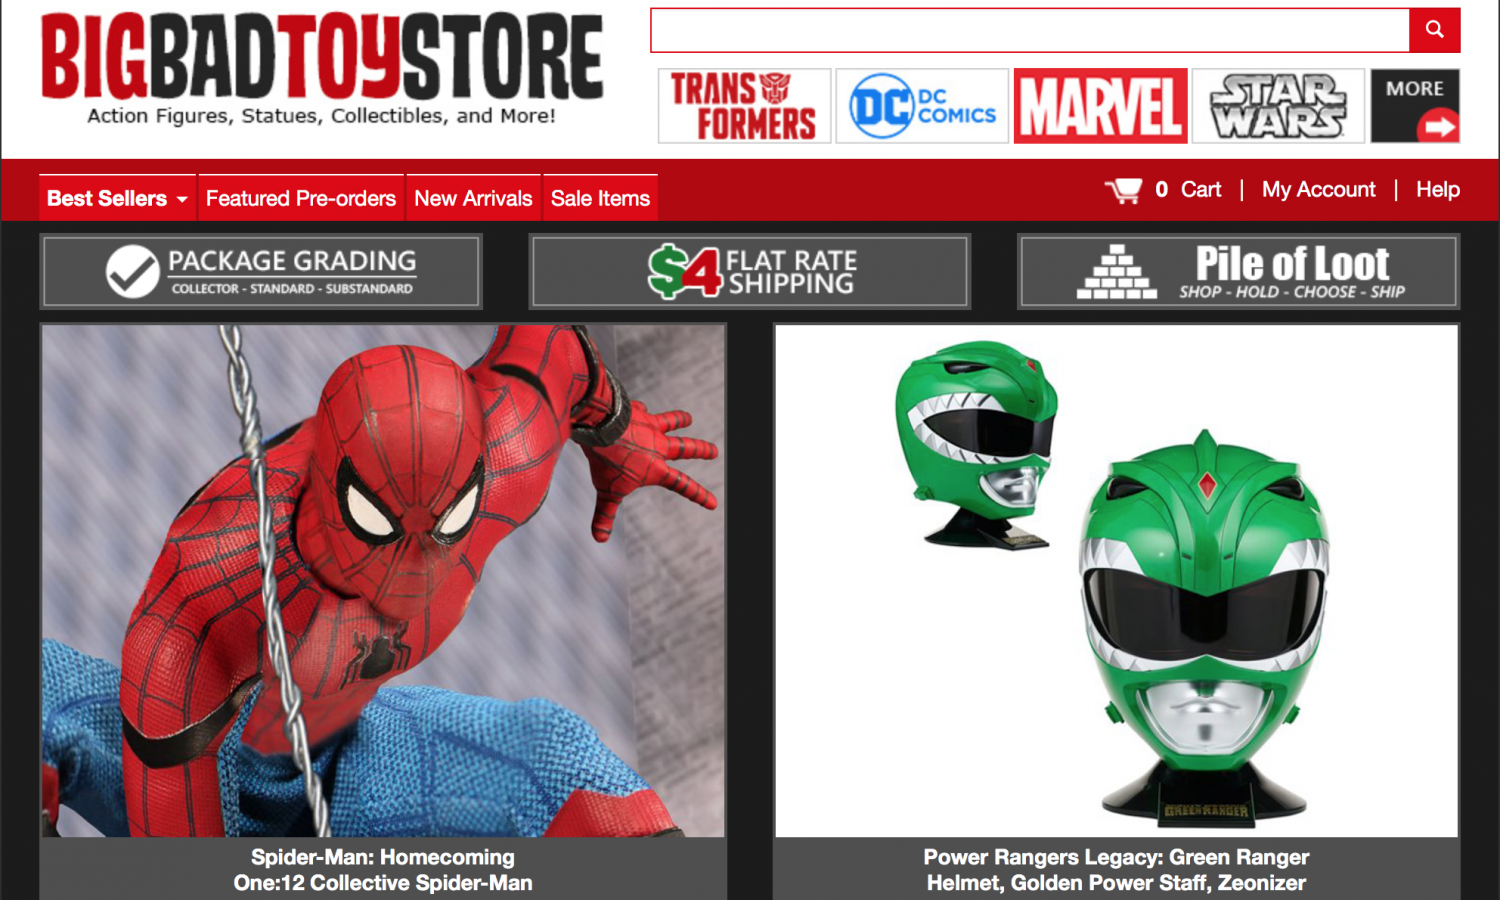 BigBadToyStore: Spider-Man, Power Rangers Legacy, Titans Return, Hannibal Lecter, Mortal Kombat, T-Shirts & More